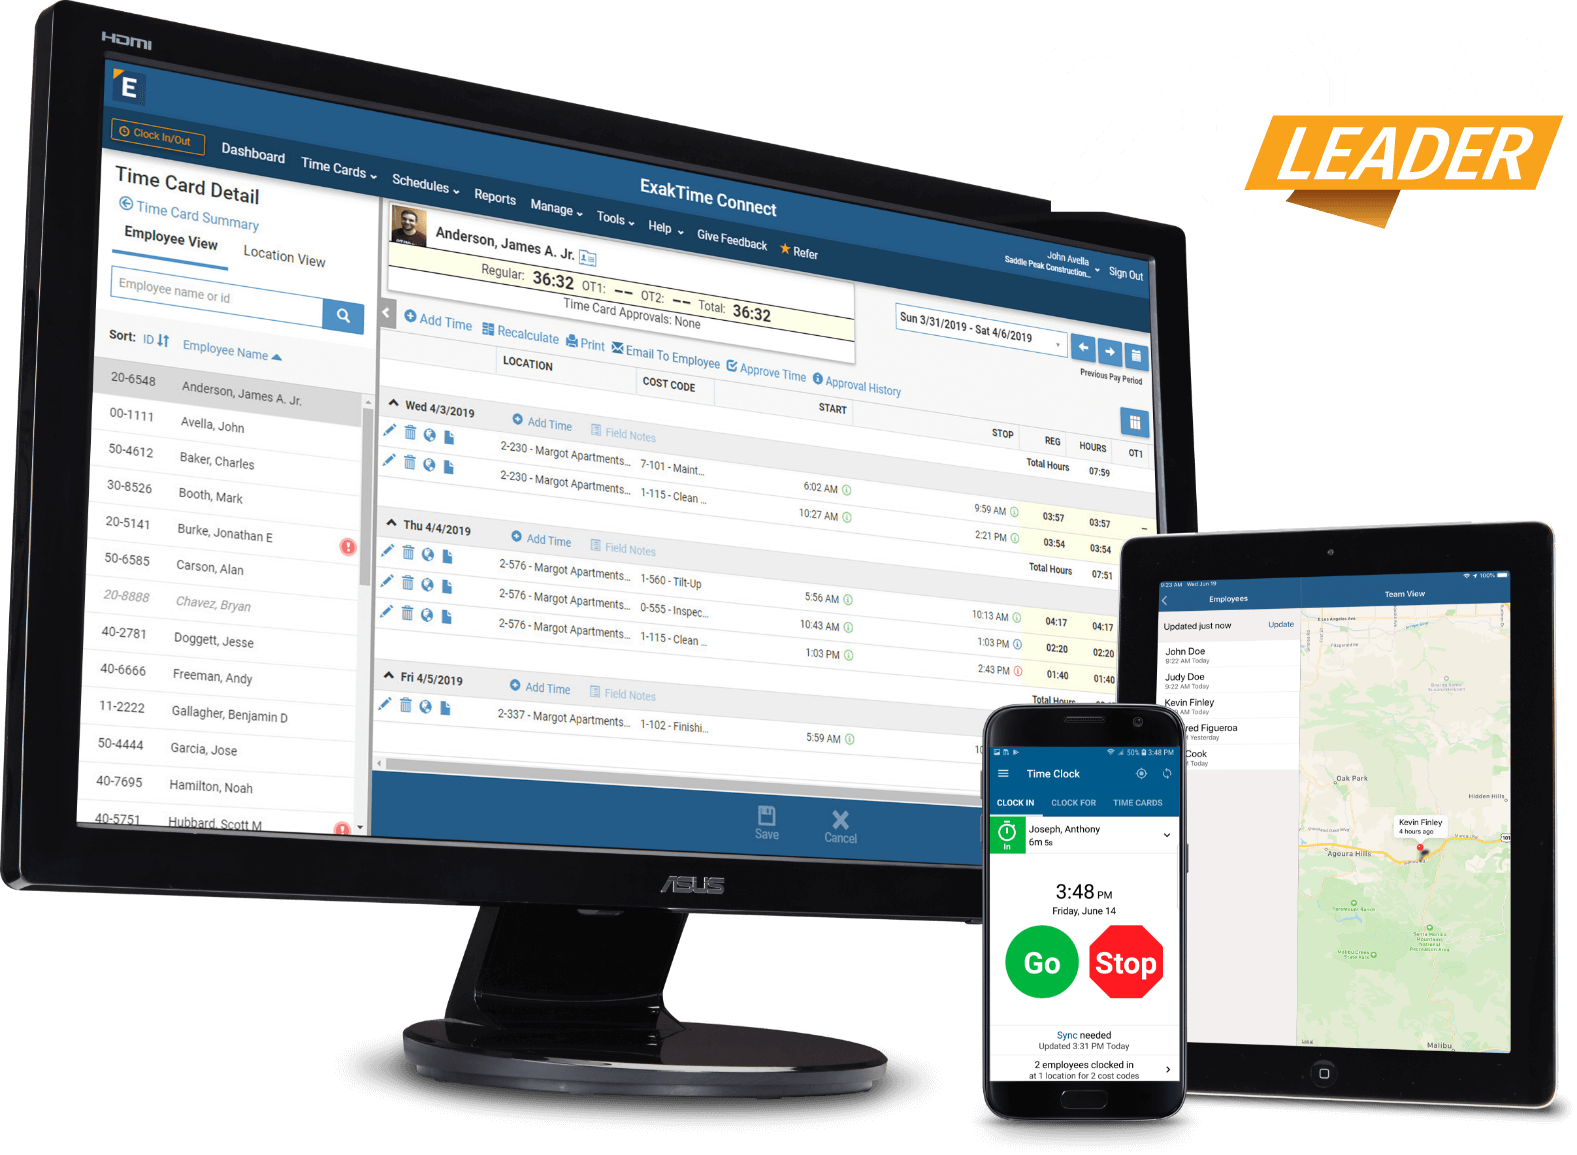 Time clock app and employee gps tracking software